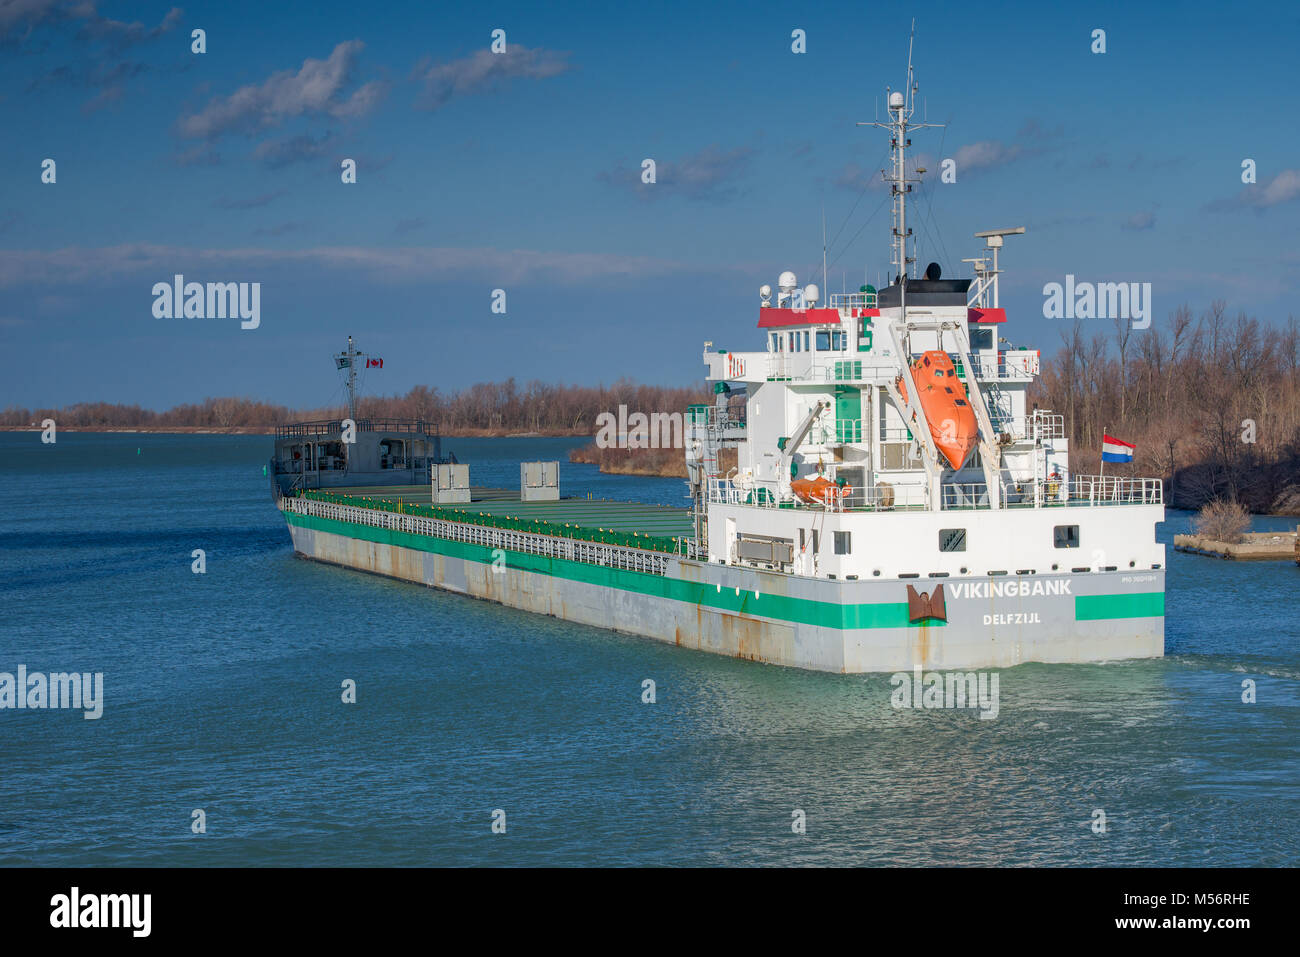 The Vikingbank General Cargo Ship passing through the Welland Canal - Stock Image